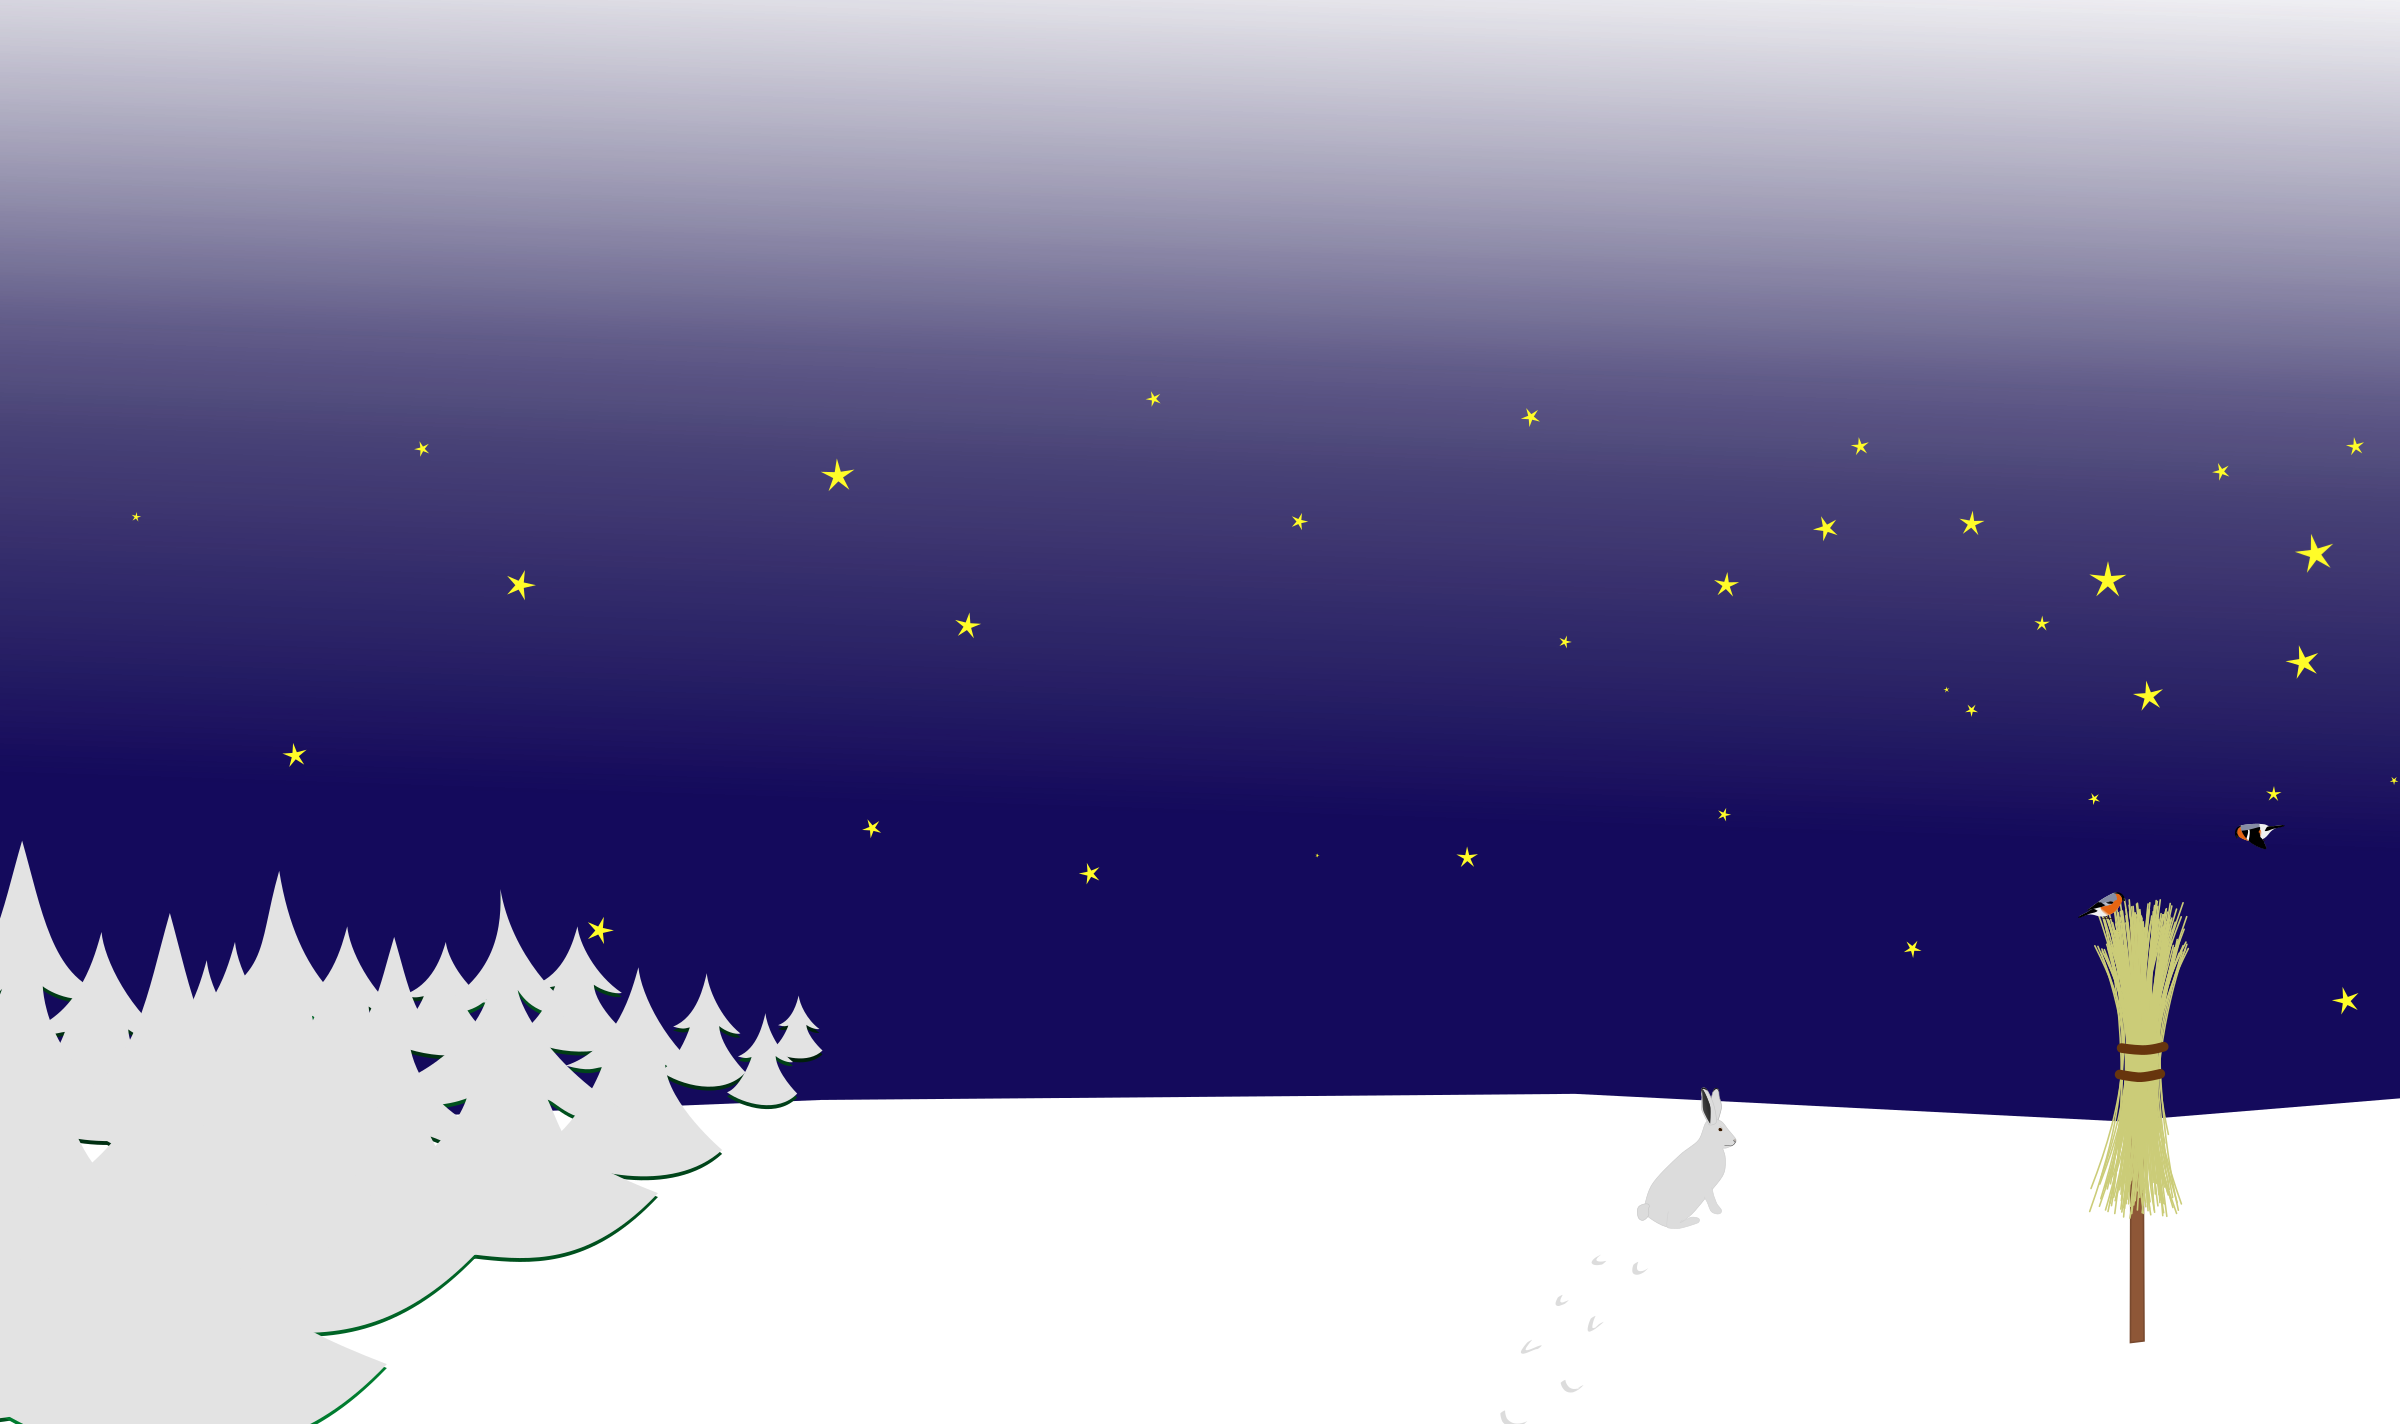 Winter background png. Night scene icons free